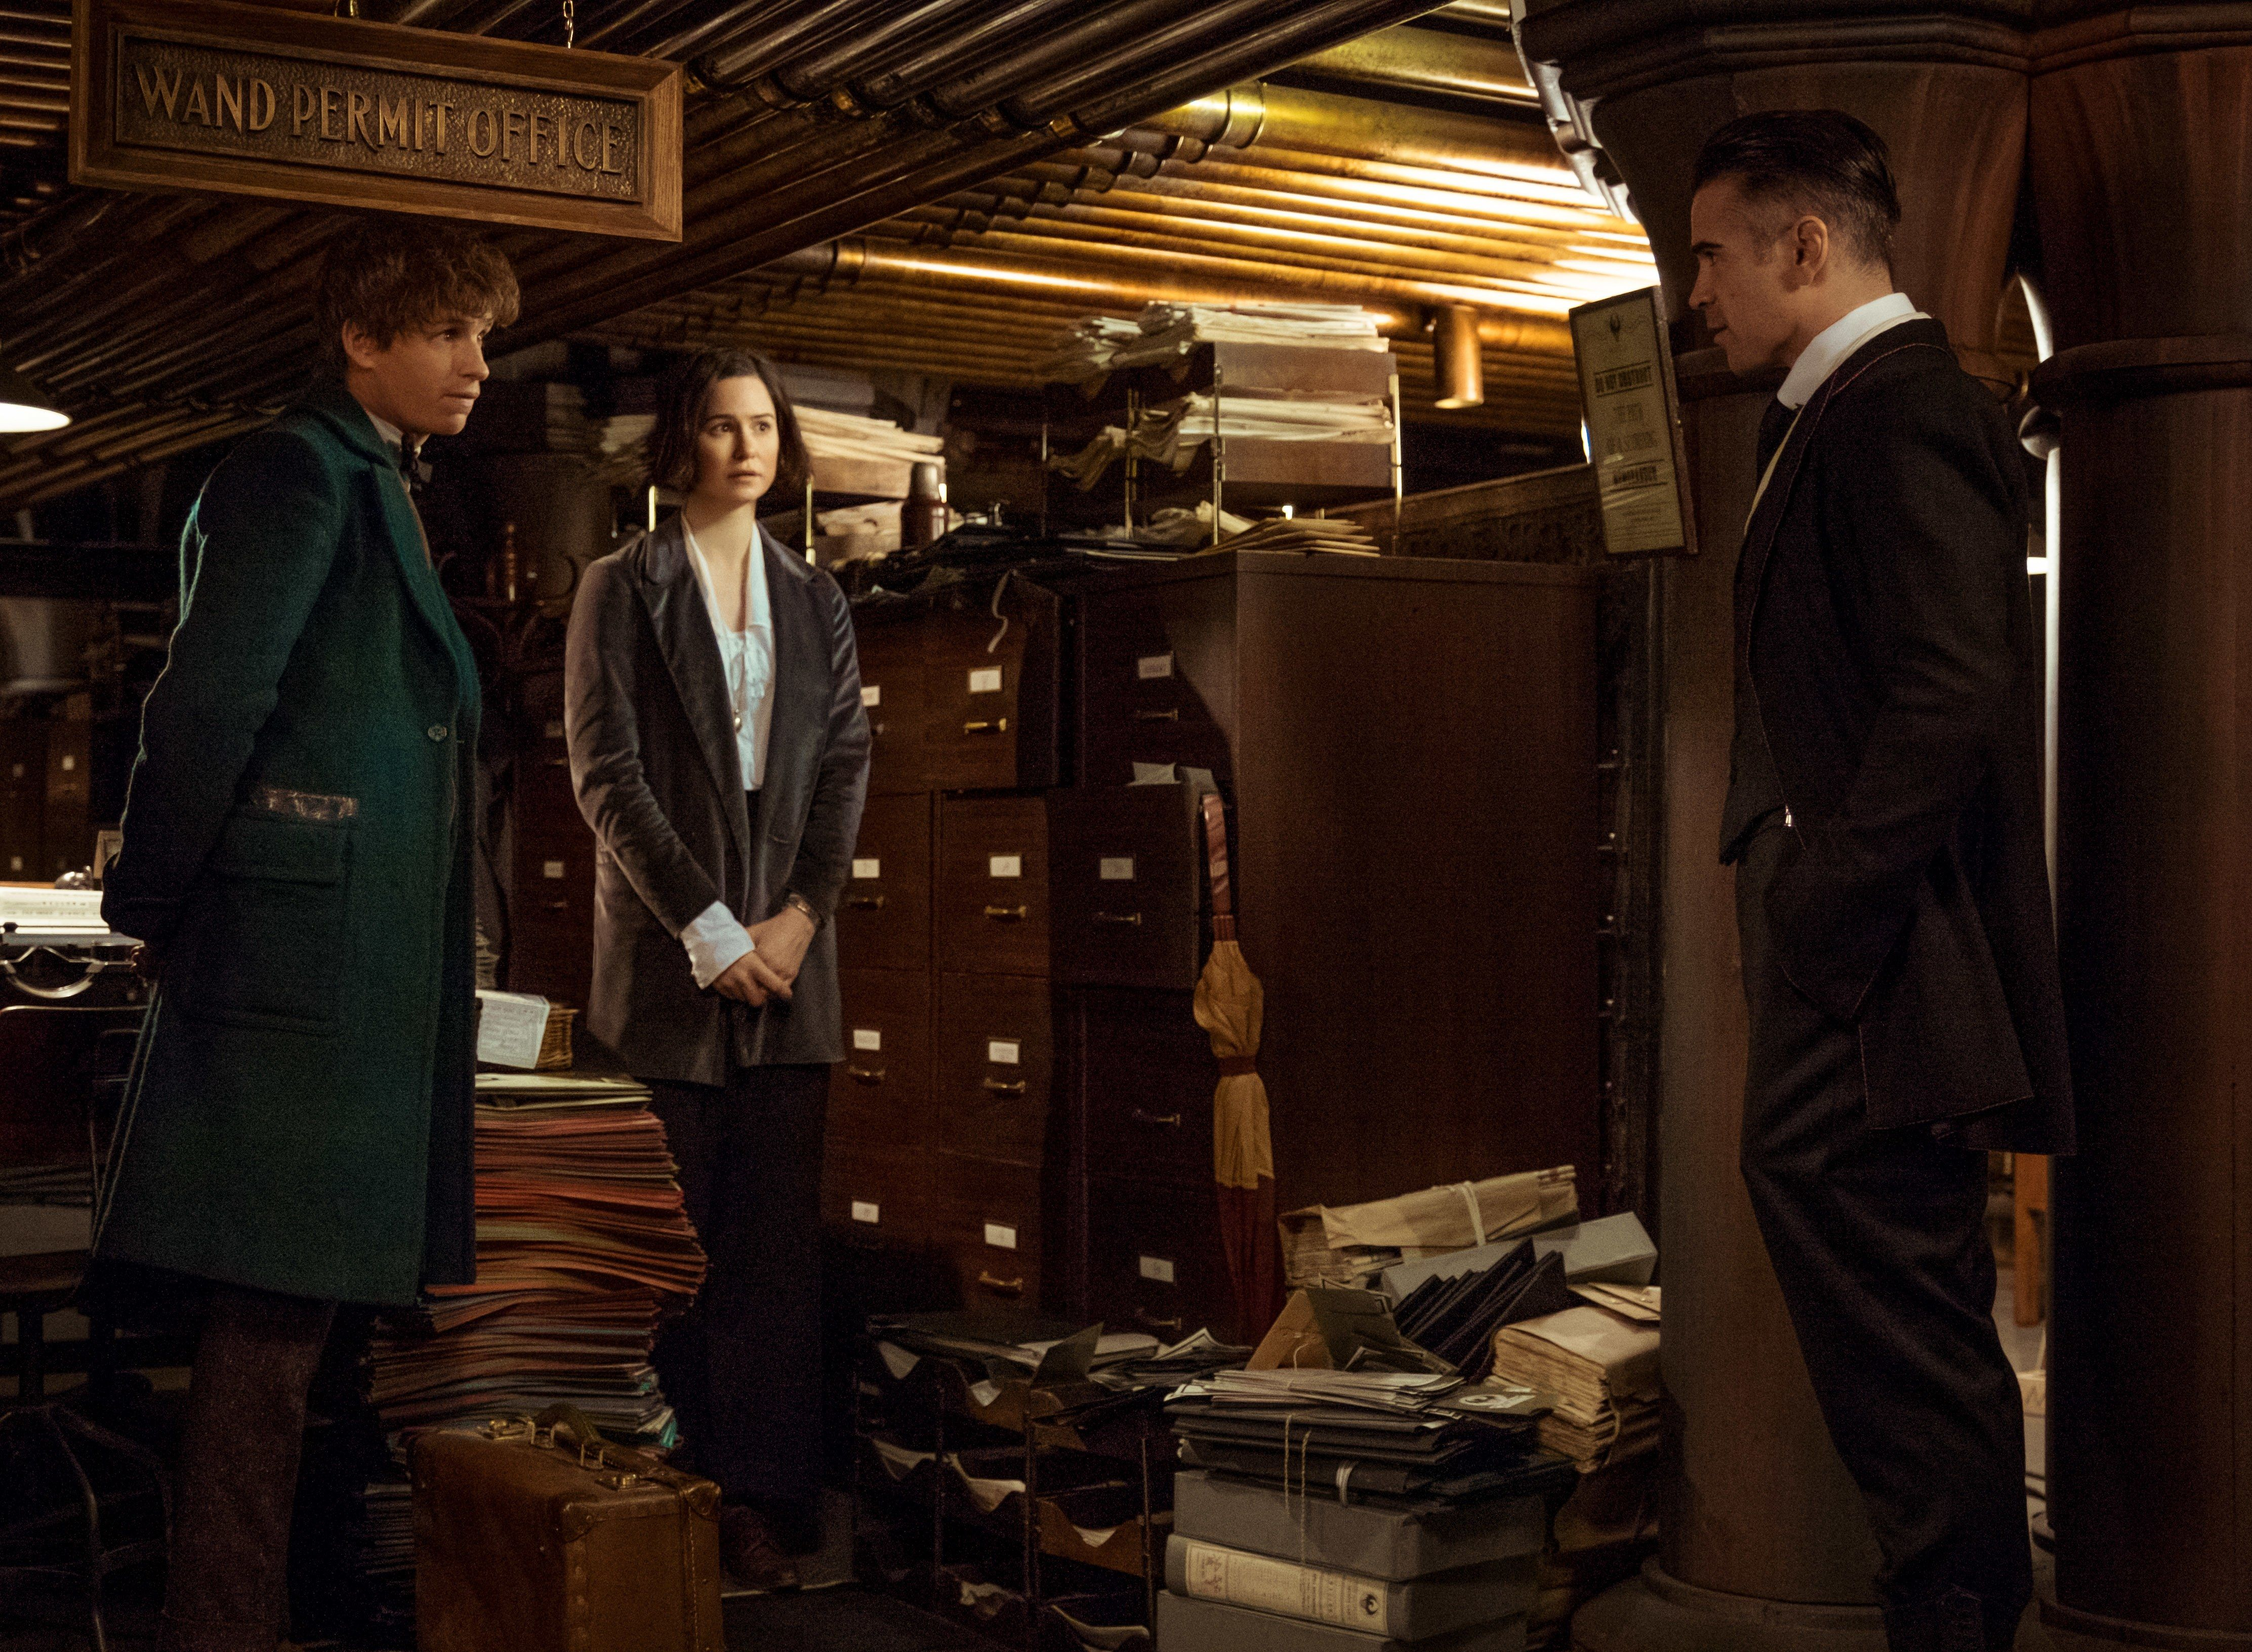 Fantastic Beasts and Where to Find Them Set Designs Photos ...